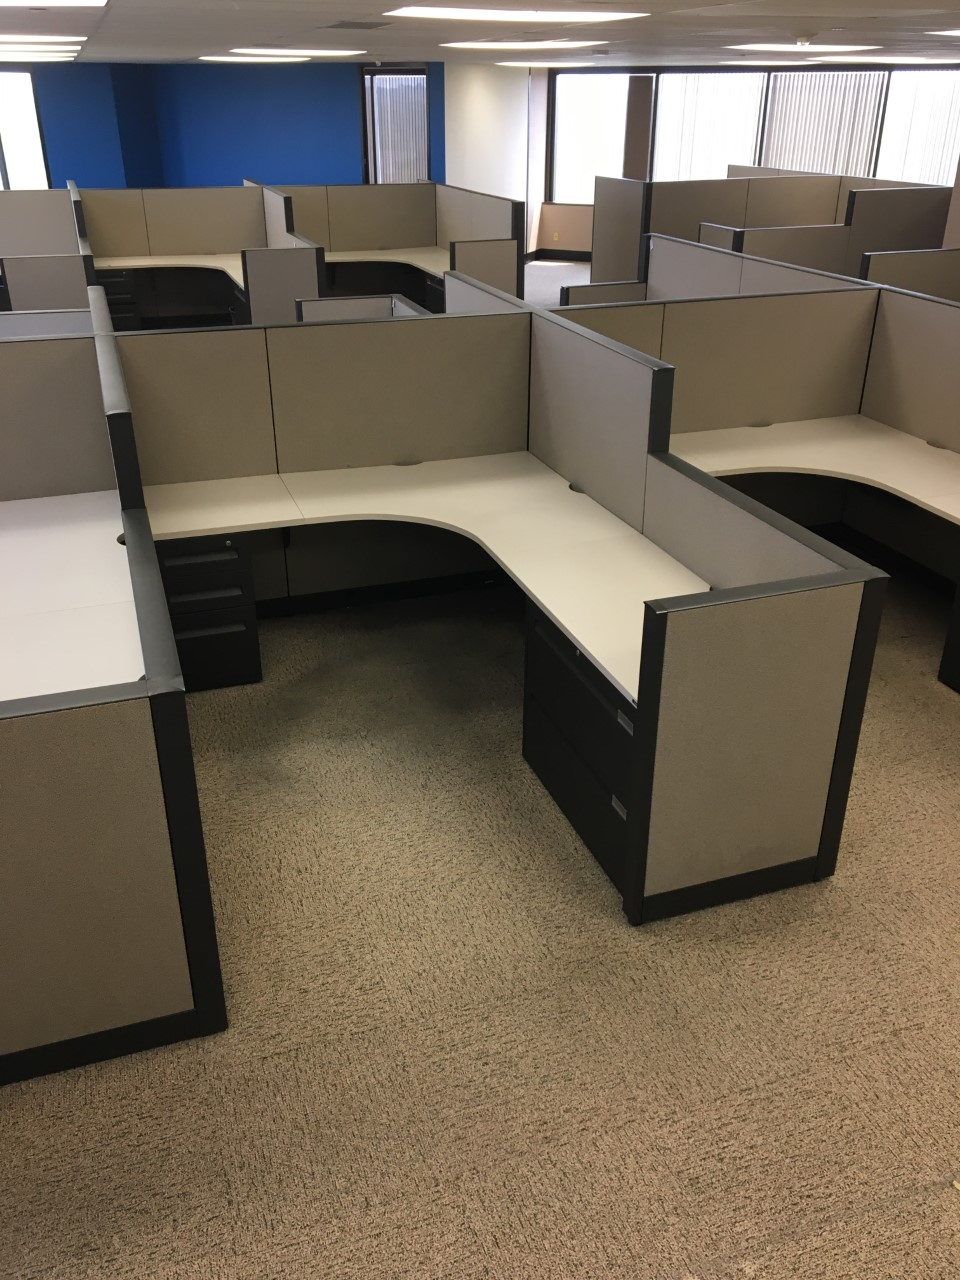 6′ X 8′ X 54″H Answer Stations